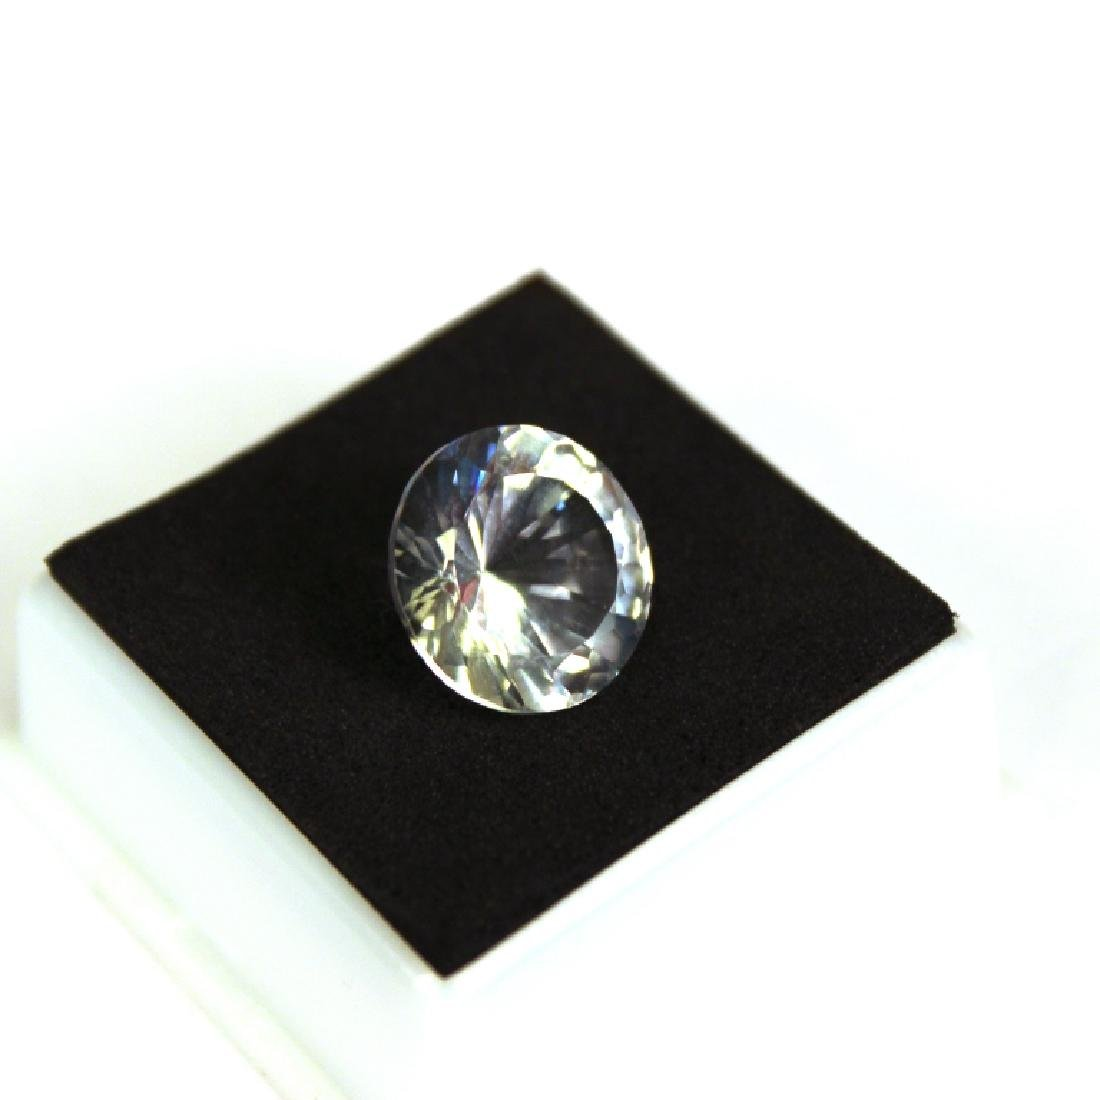 Approx 9.00 CT 14MM White Topaz Gemstone - 2